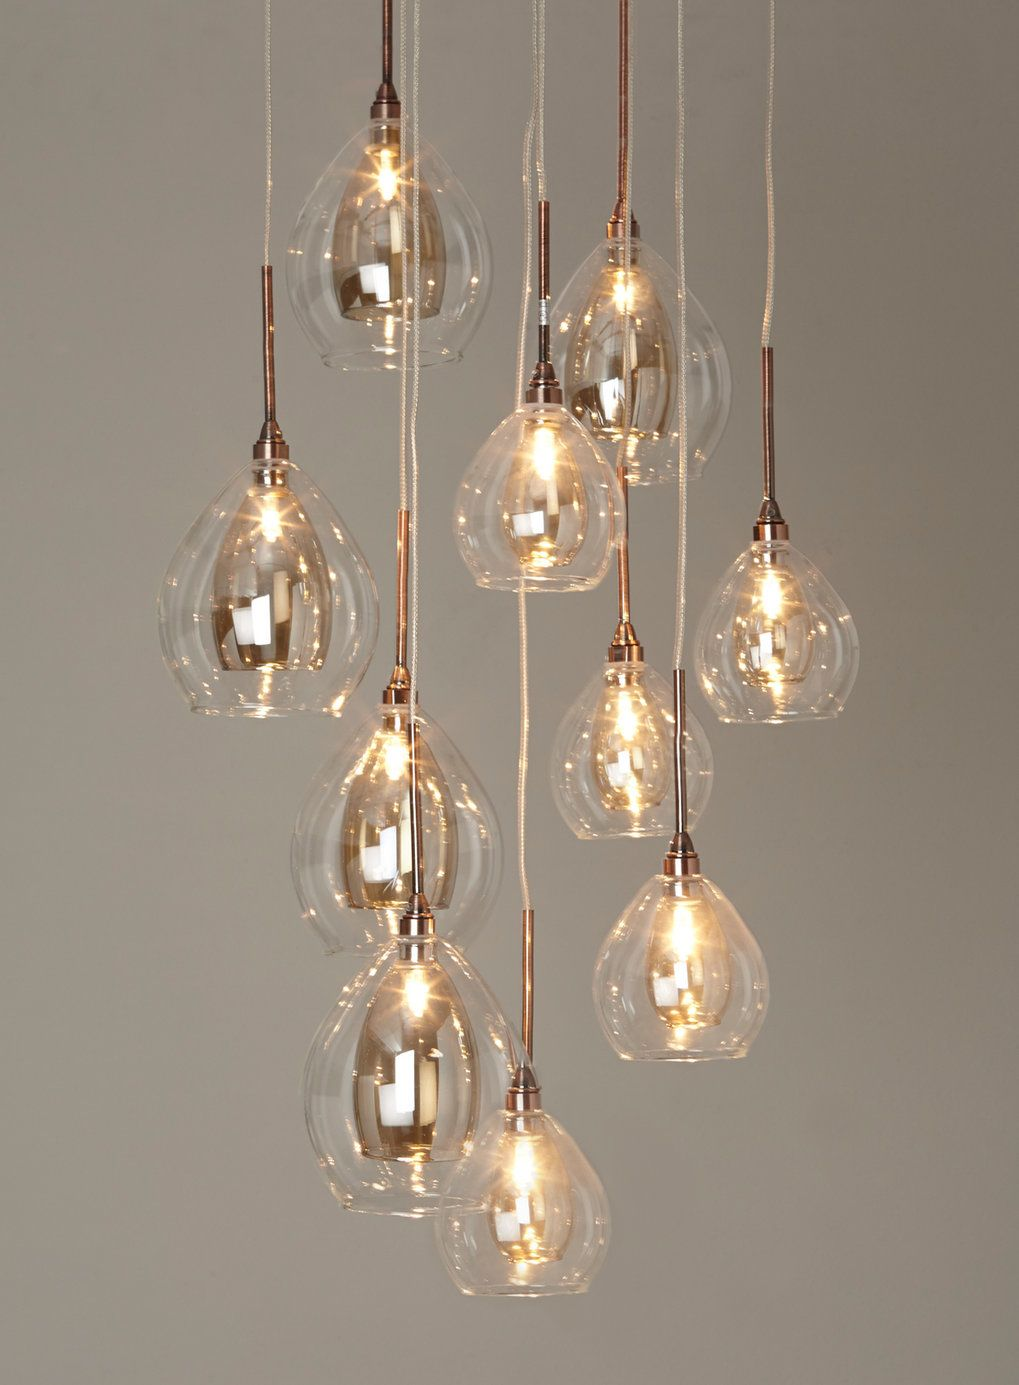 Carmella 10 light cluster  BHS Pendant over the kitchen